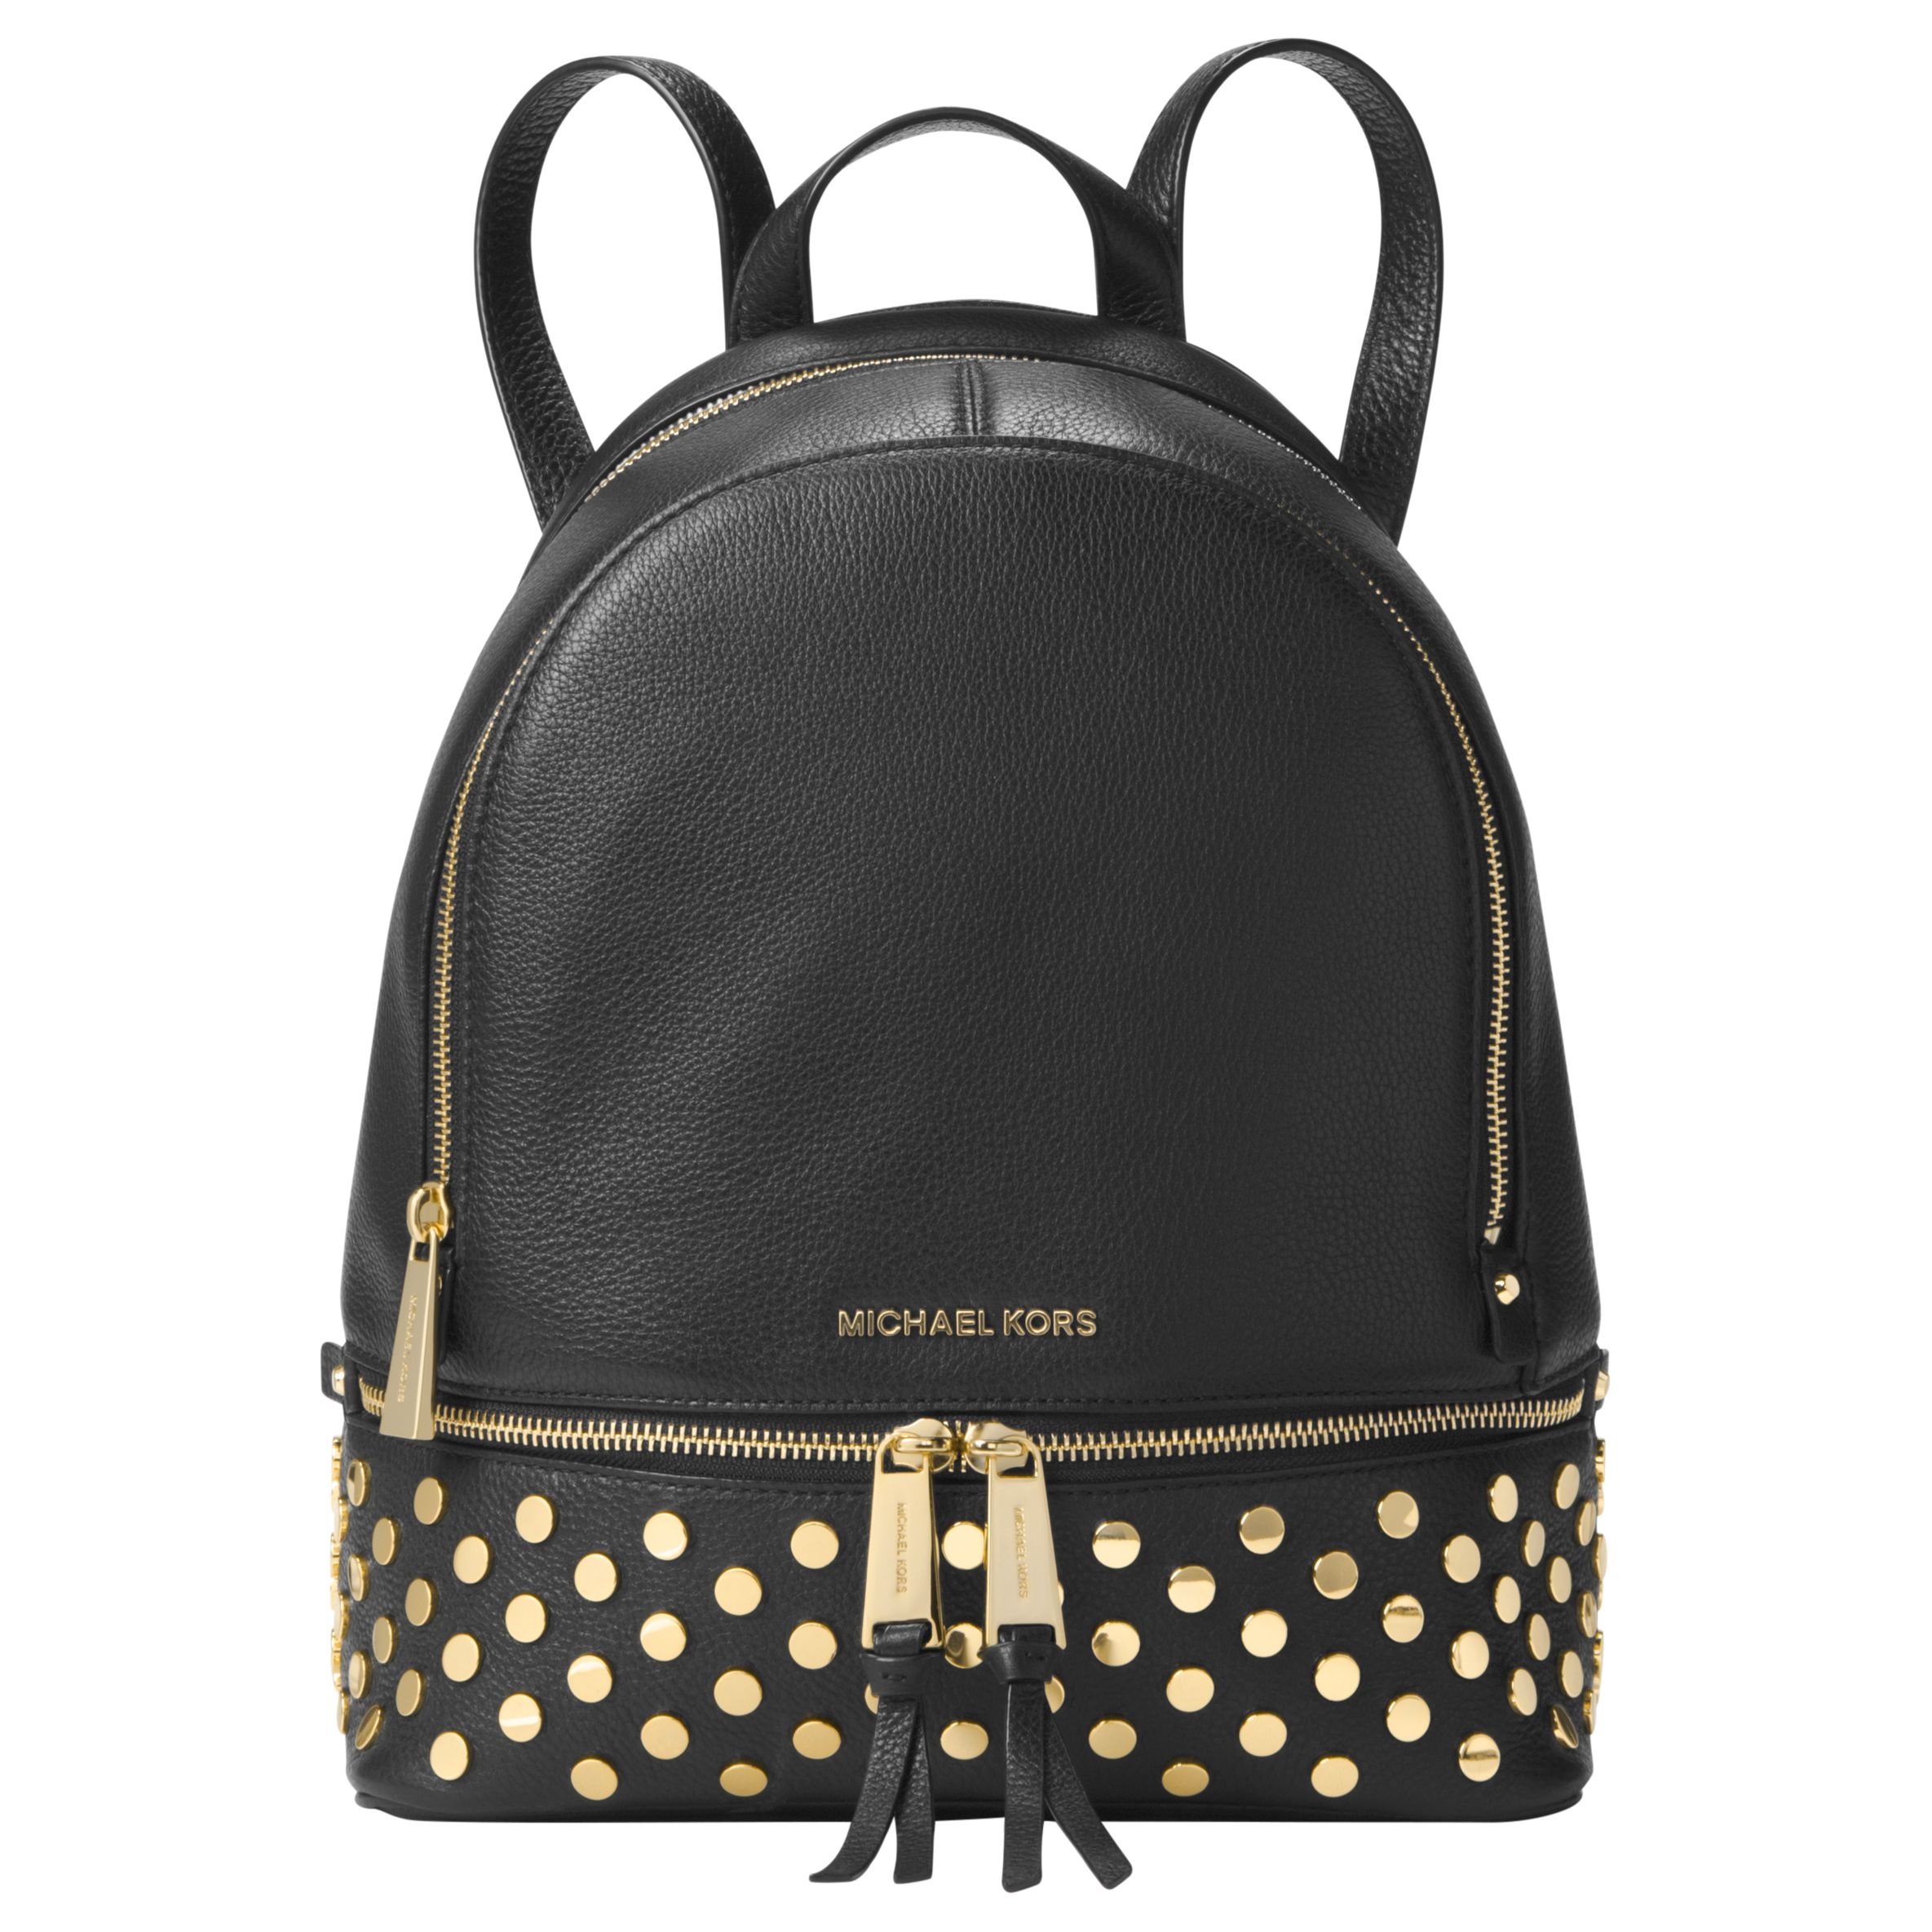 963967583f92 MICHAEL Michael Kors Rhea Leather Lace Medium Backpack, Black at John Lewis  & Partners